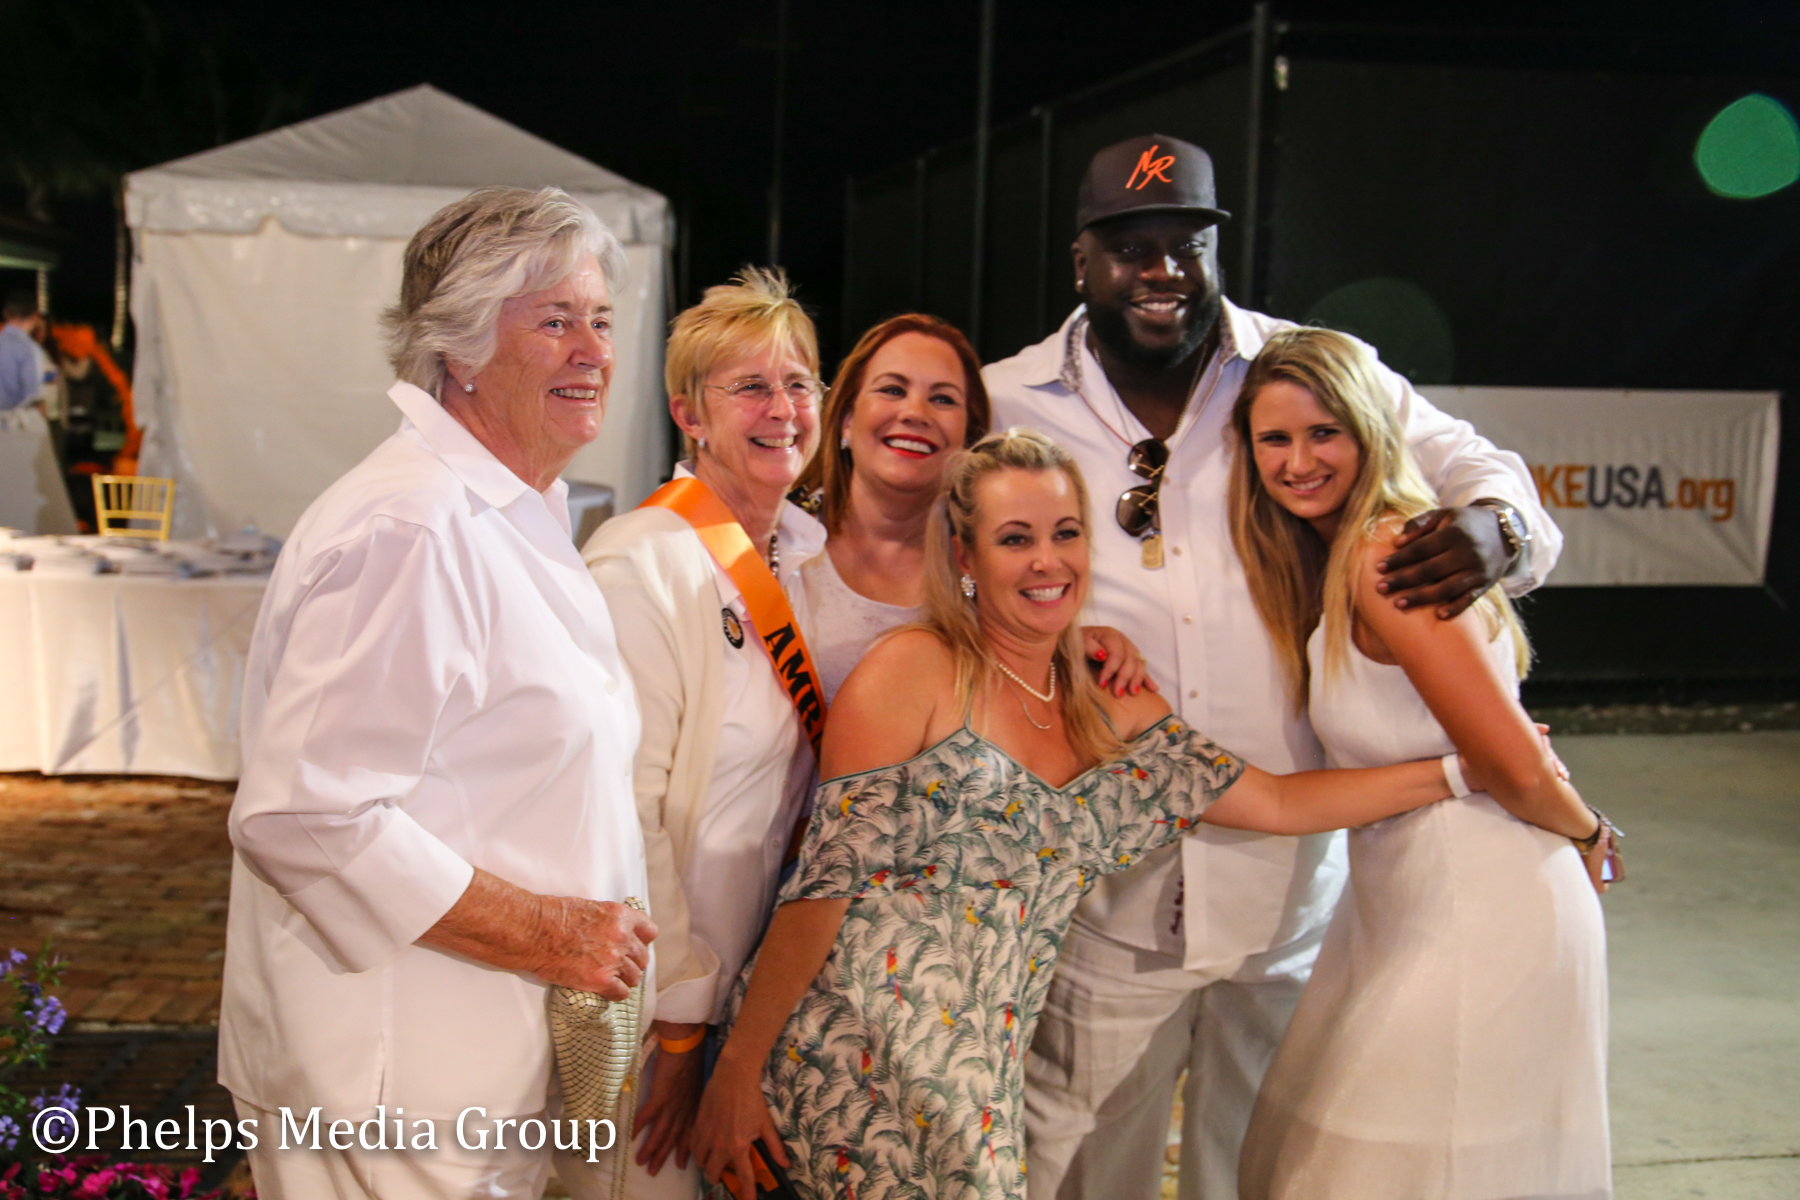 Margaret Duprey Gill Jhnston Kendall BIerer BIggie; Nic Roldan's 2nd Annual Sunset Polo & White Party, FL, by Phelps Media (1).jpg